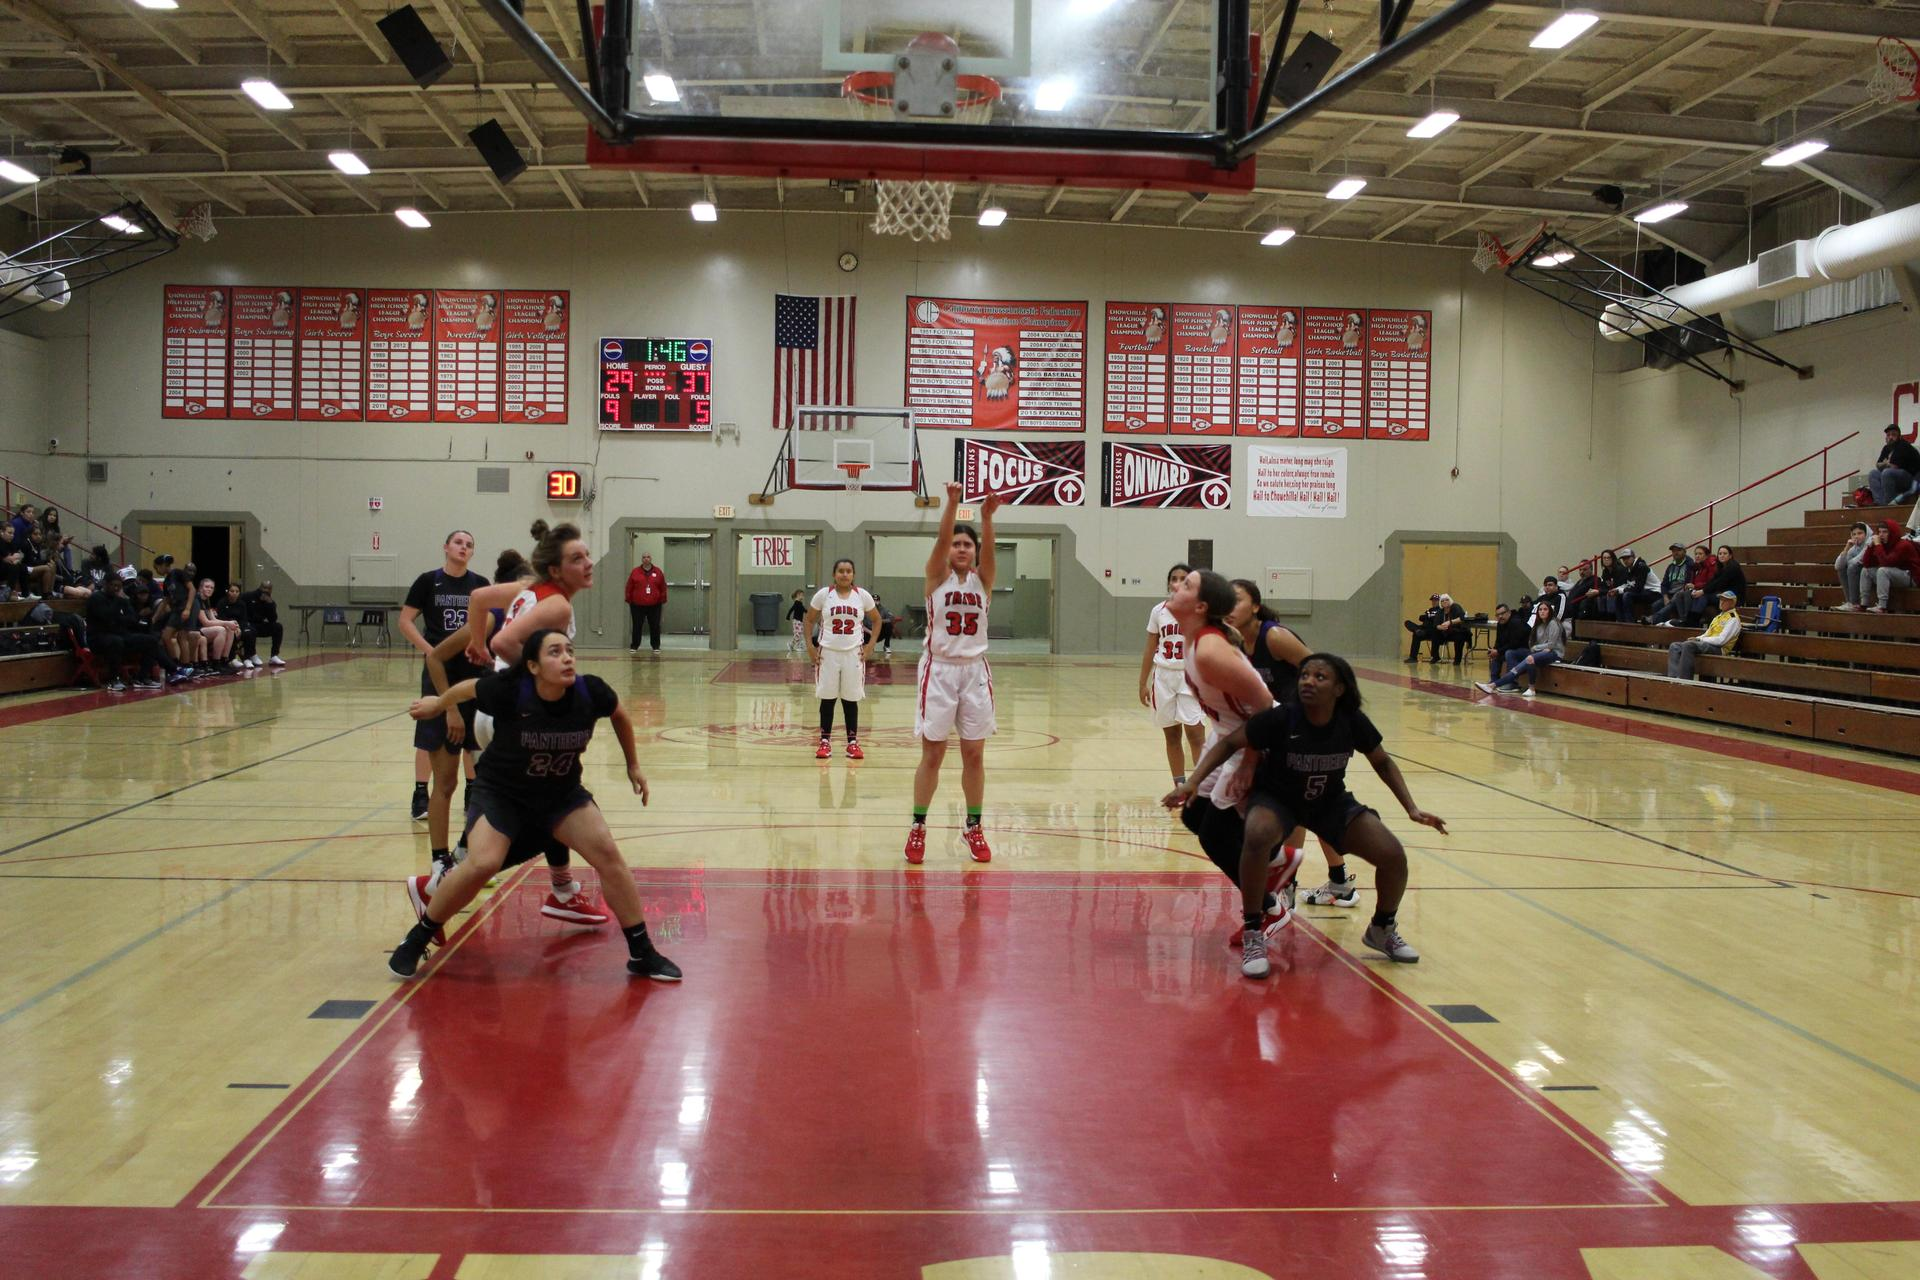 Varsity girls playing basketball